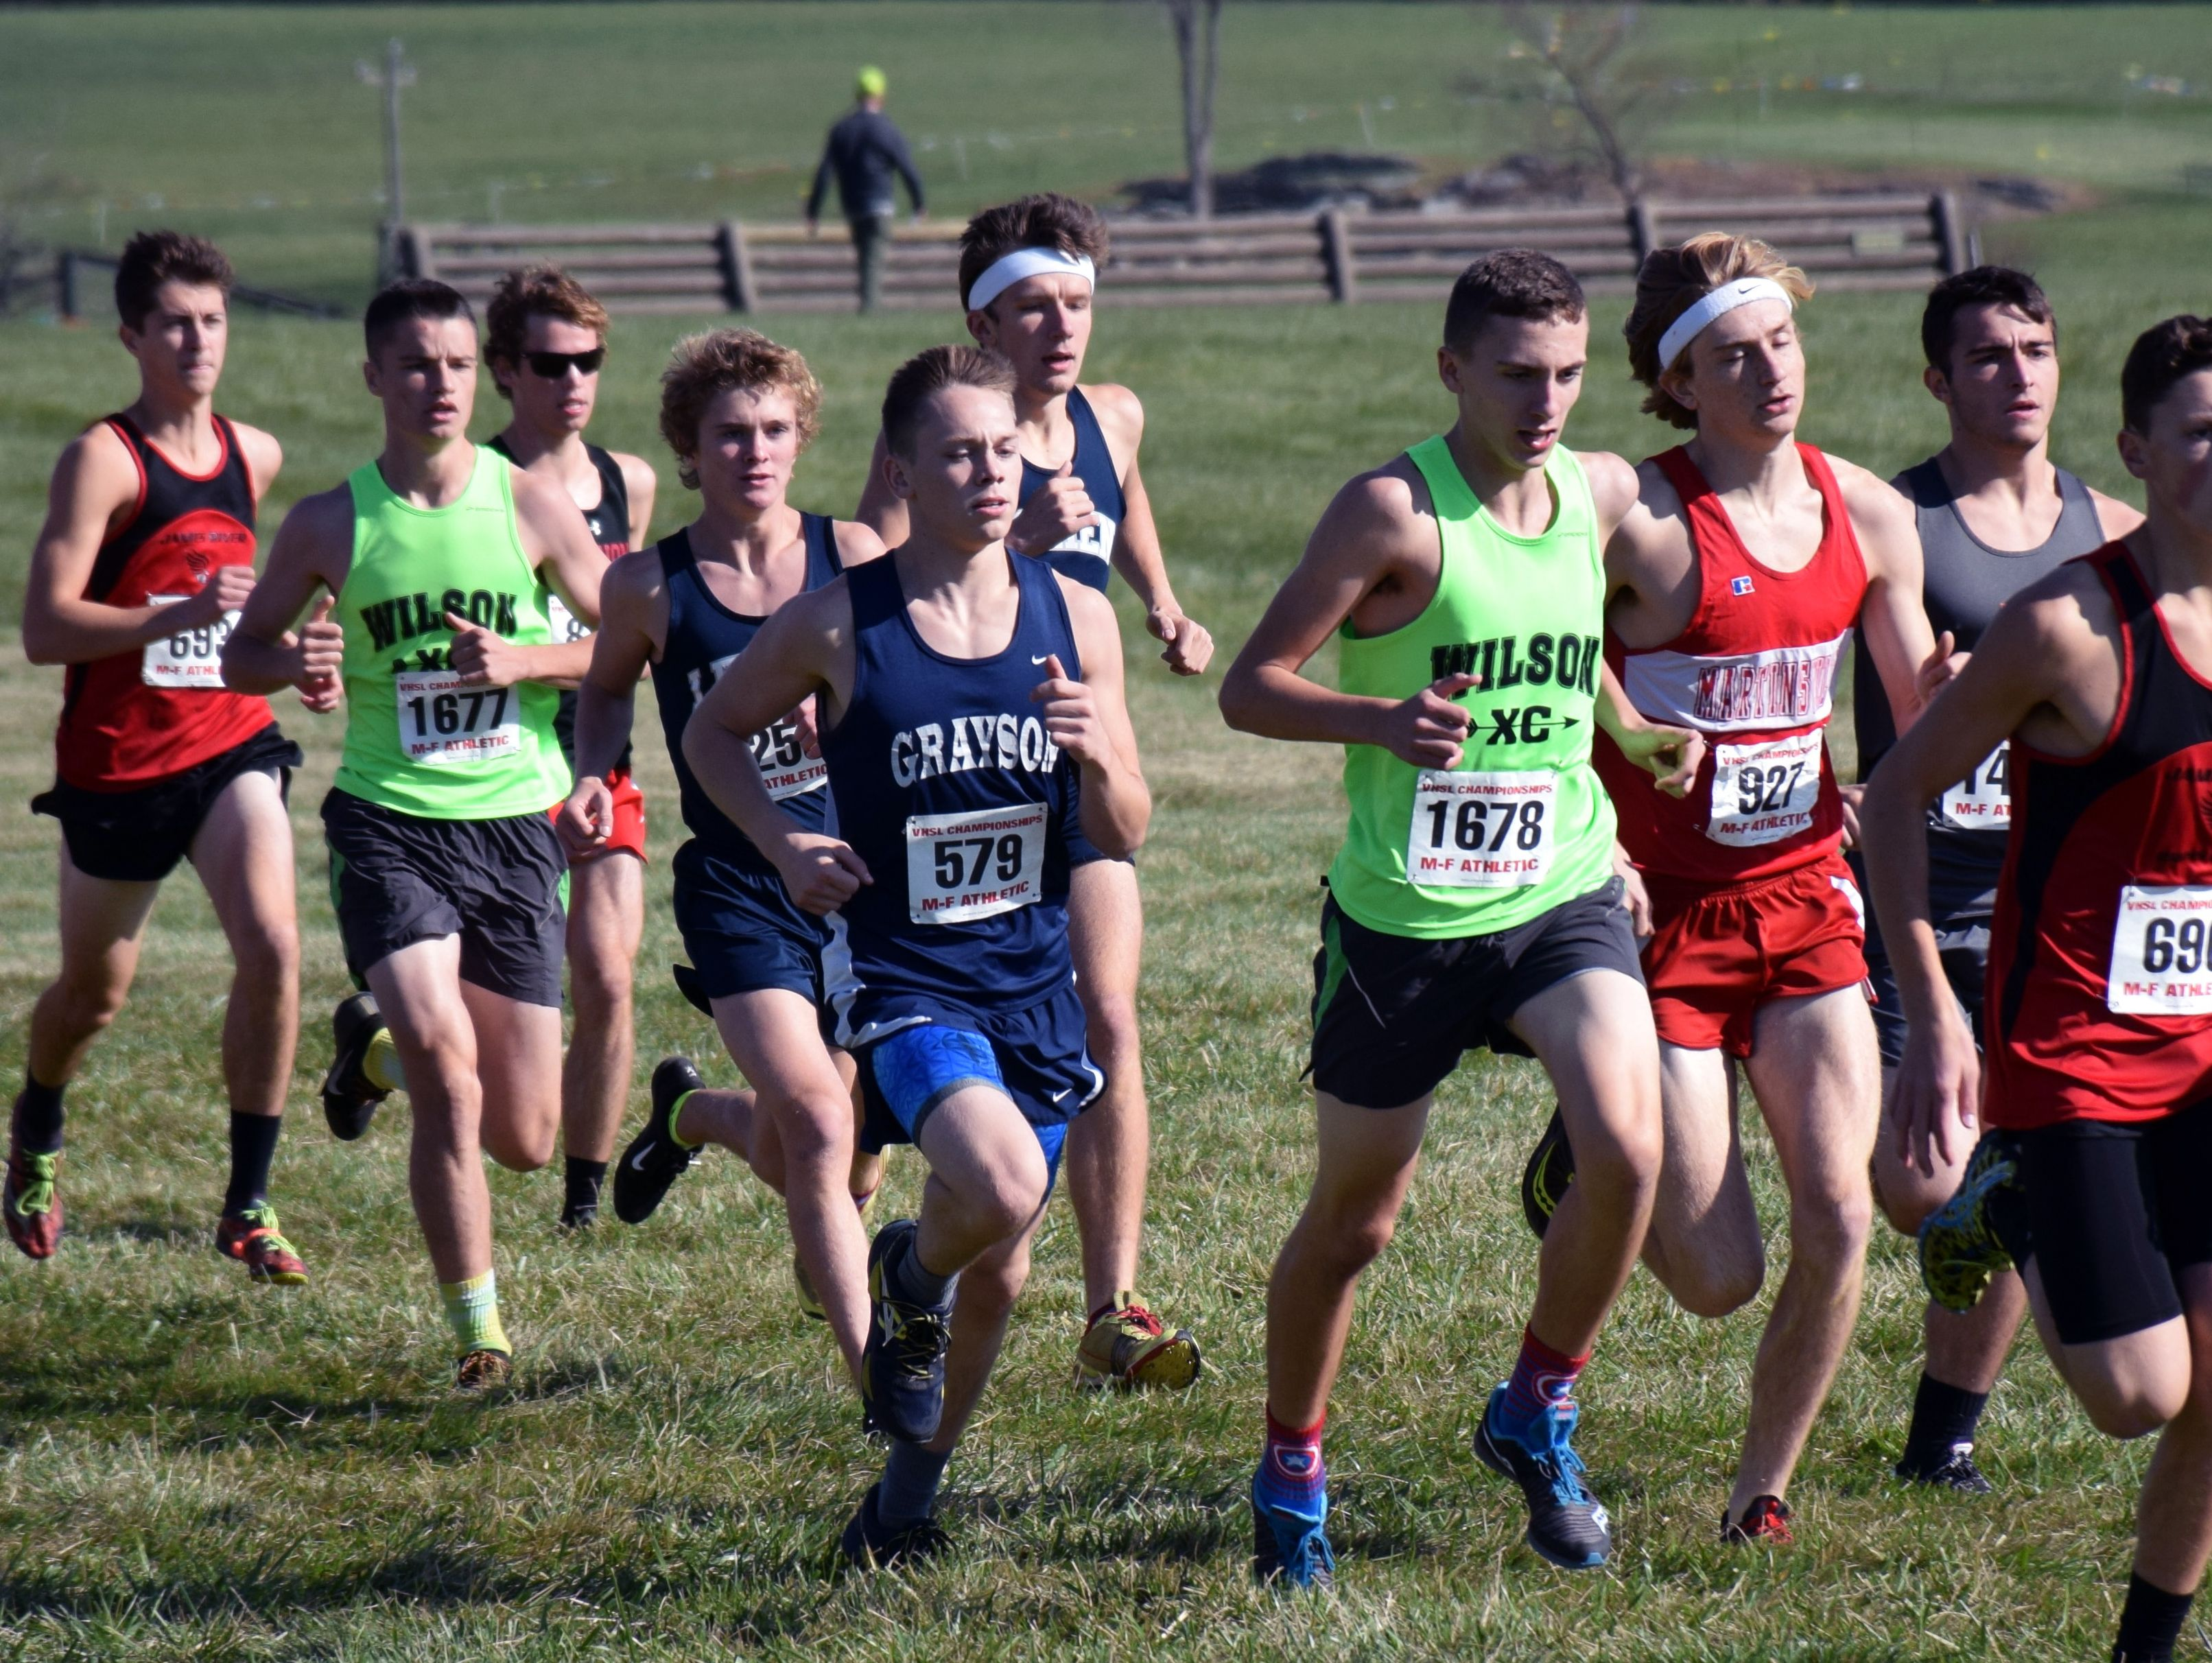 Wilson Memorial's Vincent Leo, right, keeps ahead of Robert E. Lee's Oliver Wilson-Cook and Jacob Warner, center, and teammate Kyle Bryant, left, after the start of the Group 2A boys race at the VHSL cross country championships at Great Meadow in The Plains on Friday, Nov. 11, 2016.